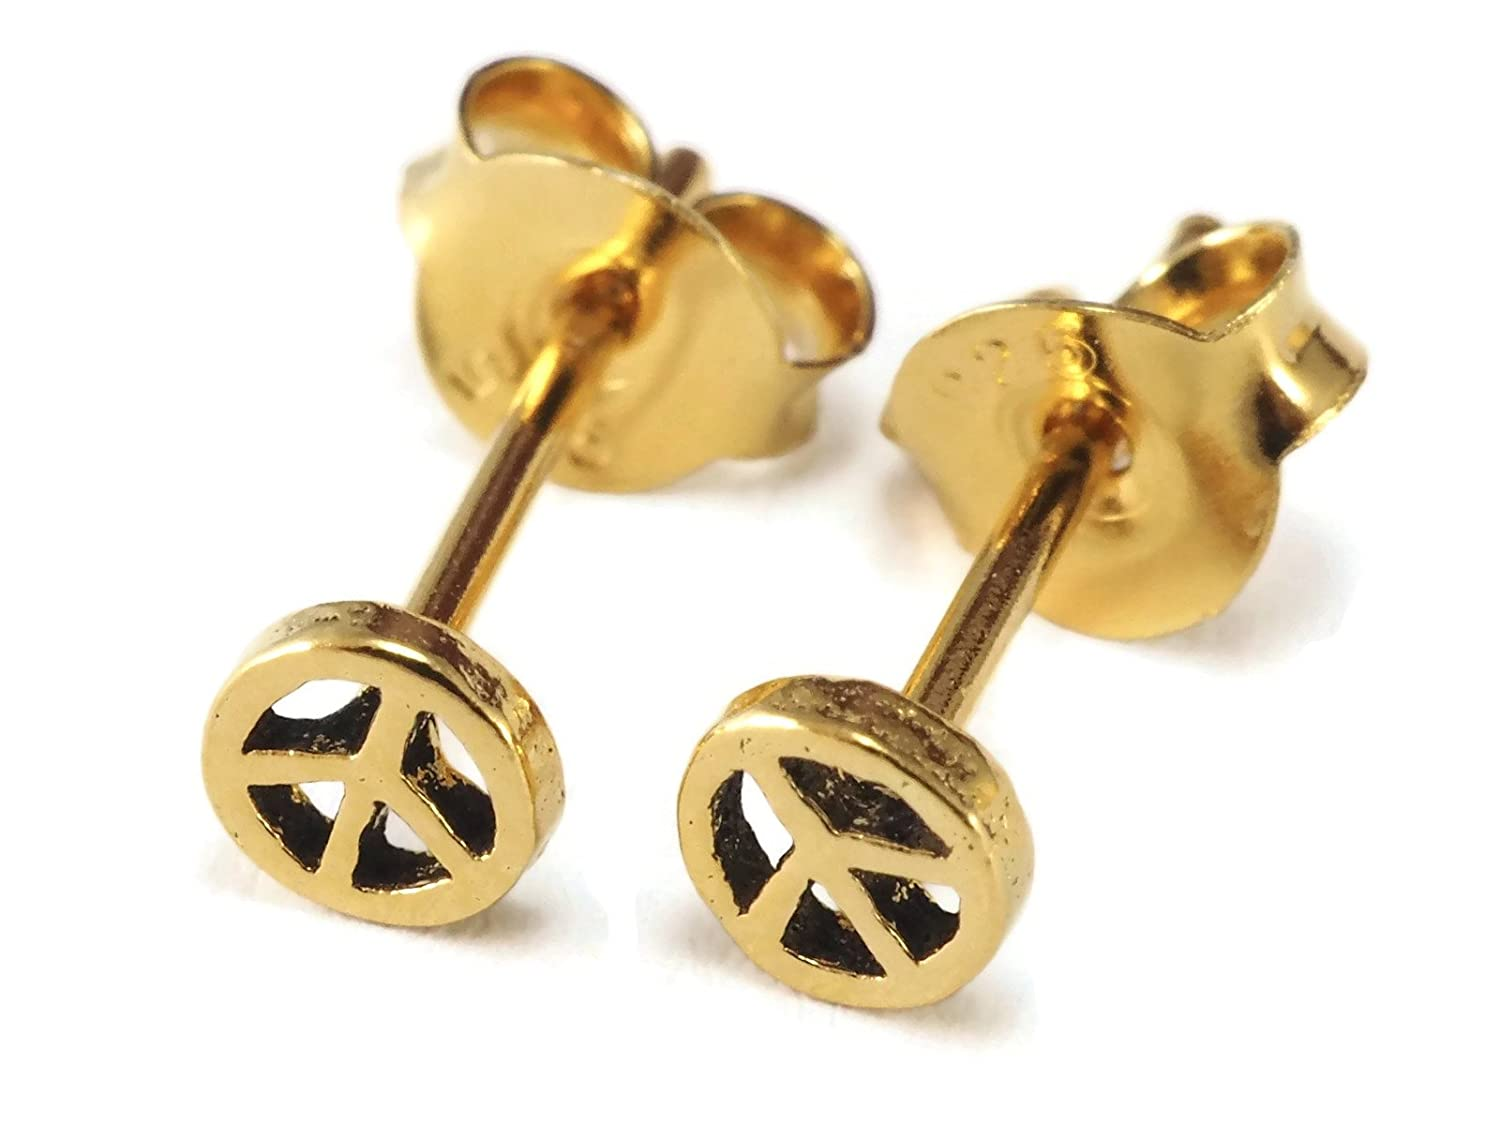 0.8mm 1 Pair 20 gauge Silver Earring Cartilage Women Girl Men Minimal Stud Very Tiny Peace Sign 4mm